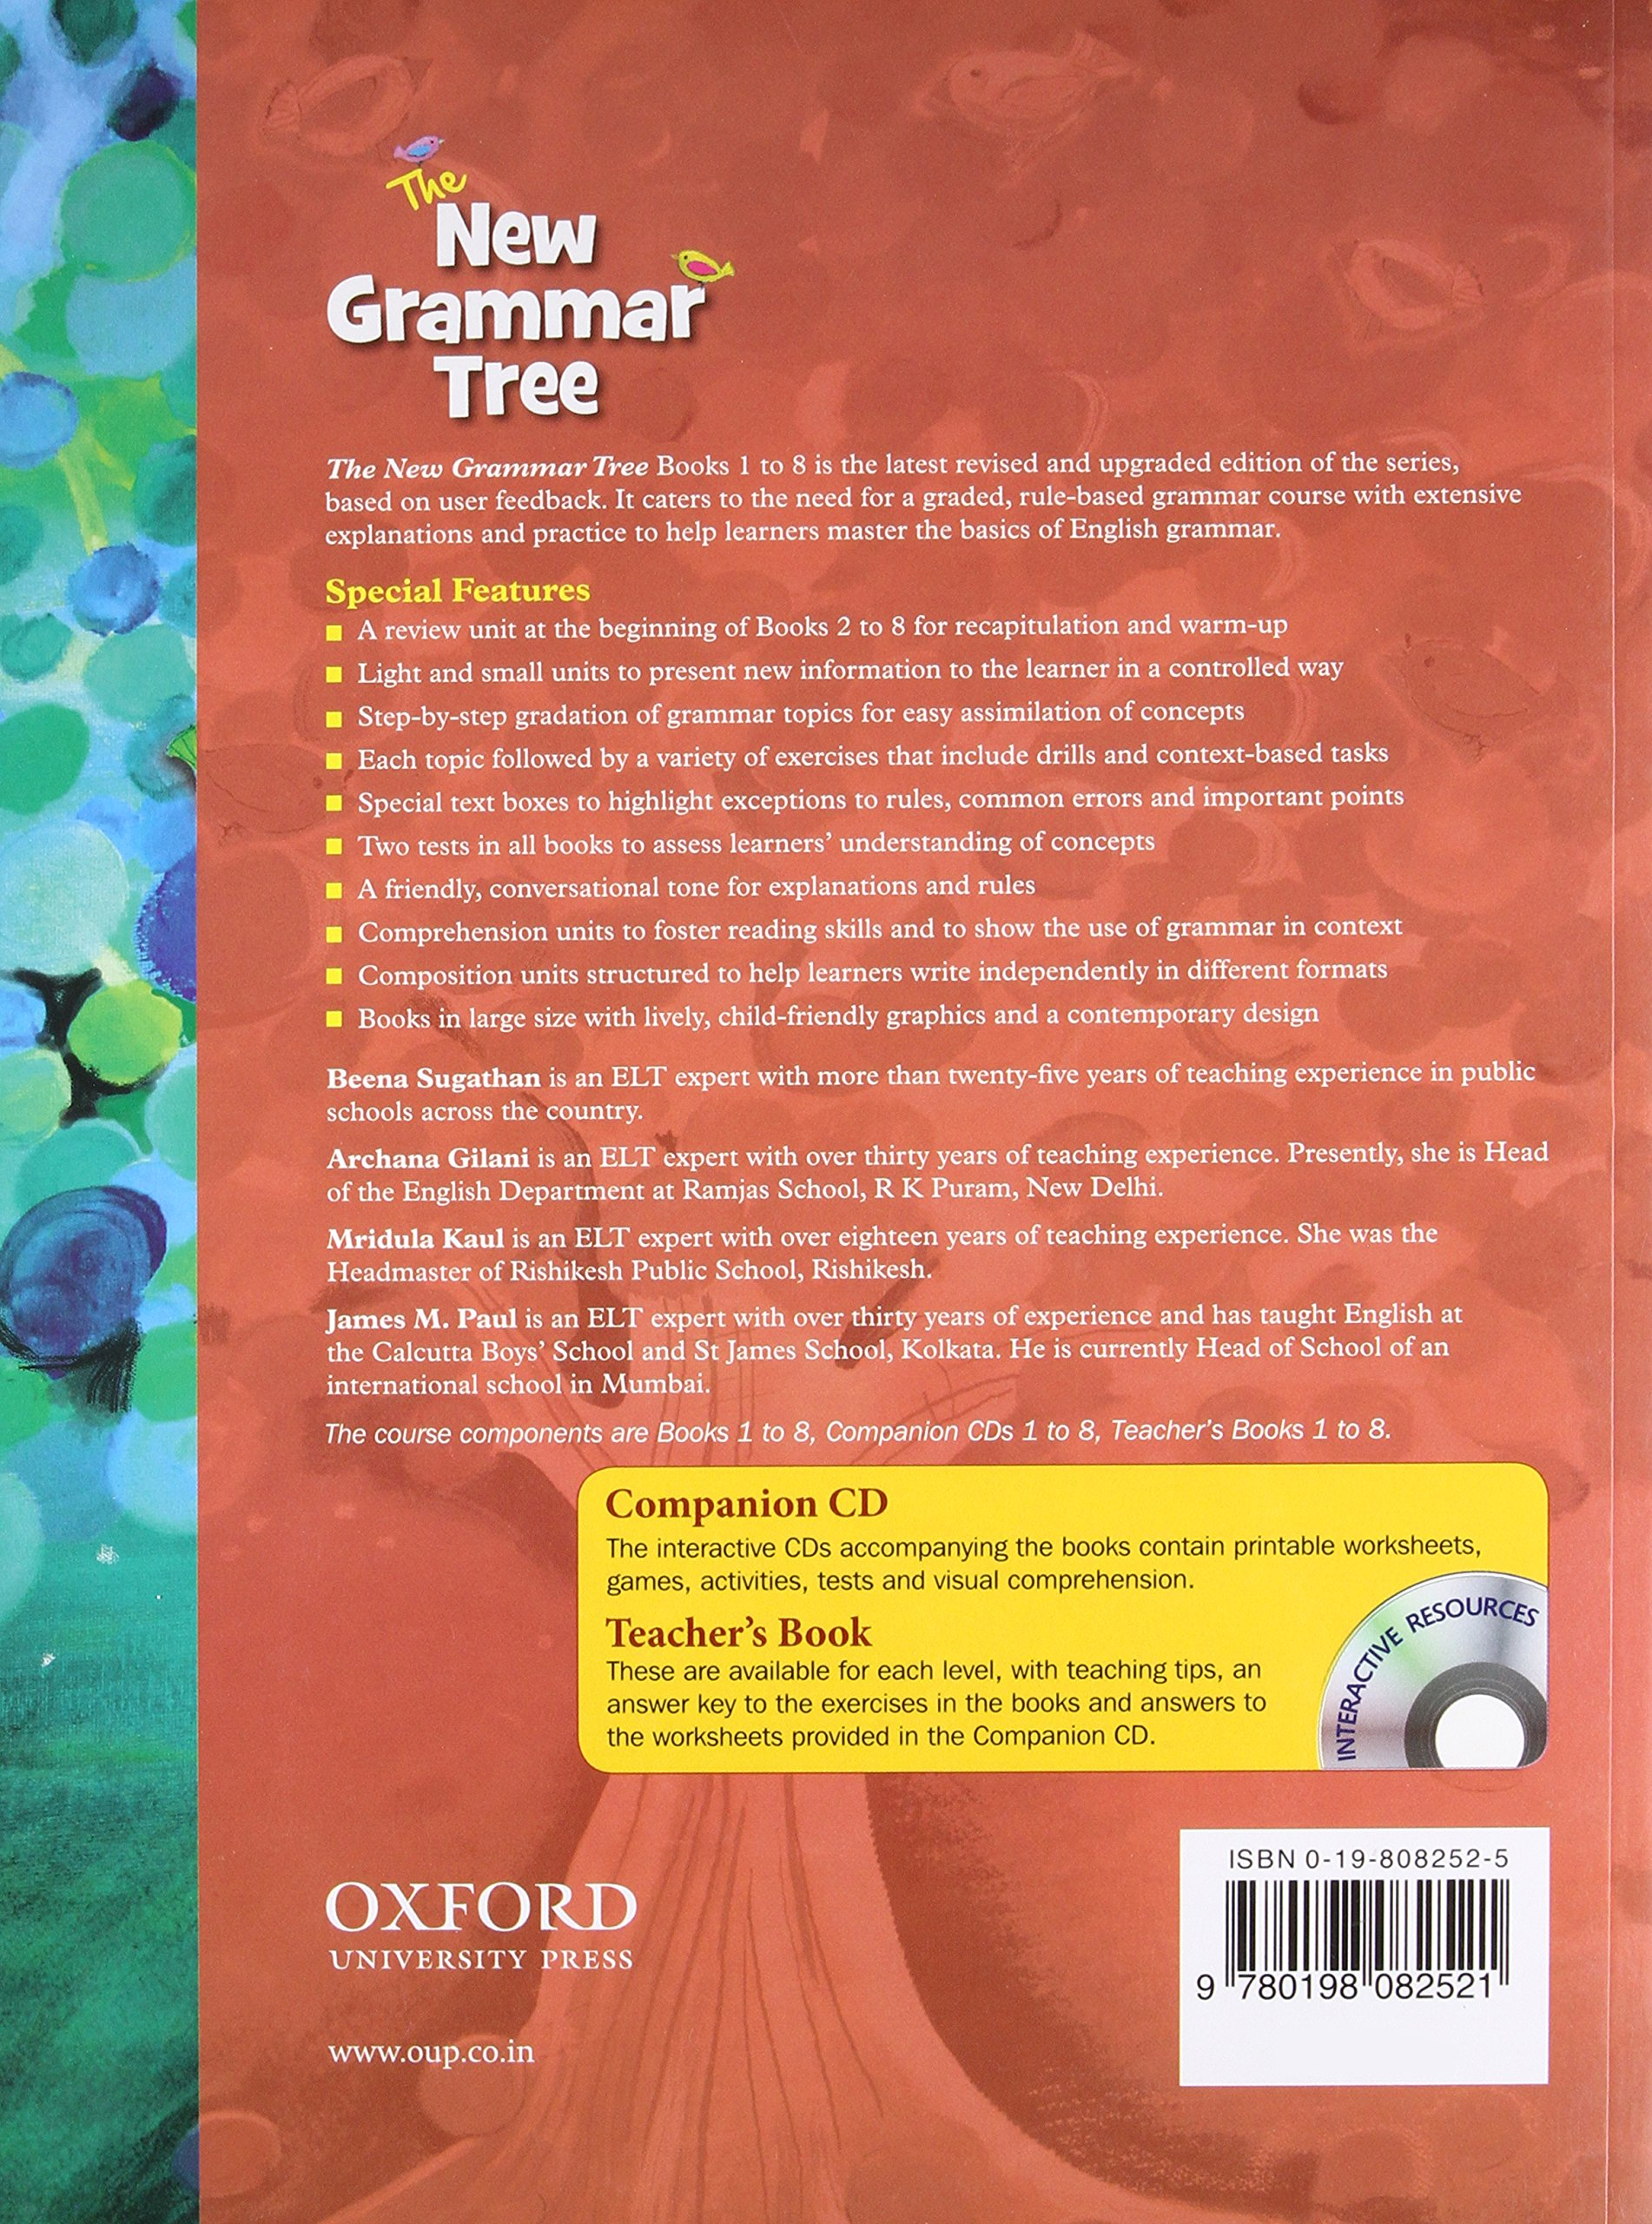 Buy The New Grammar Tree Coursebook 7: Middle Book Online at